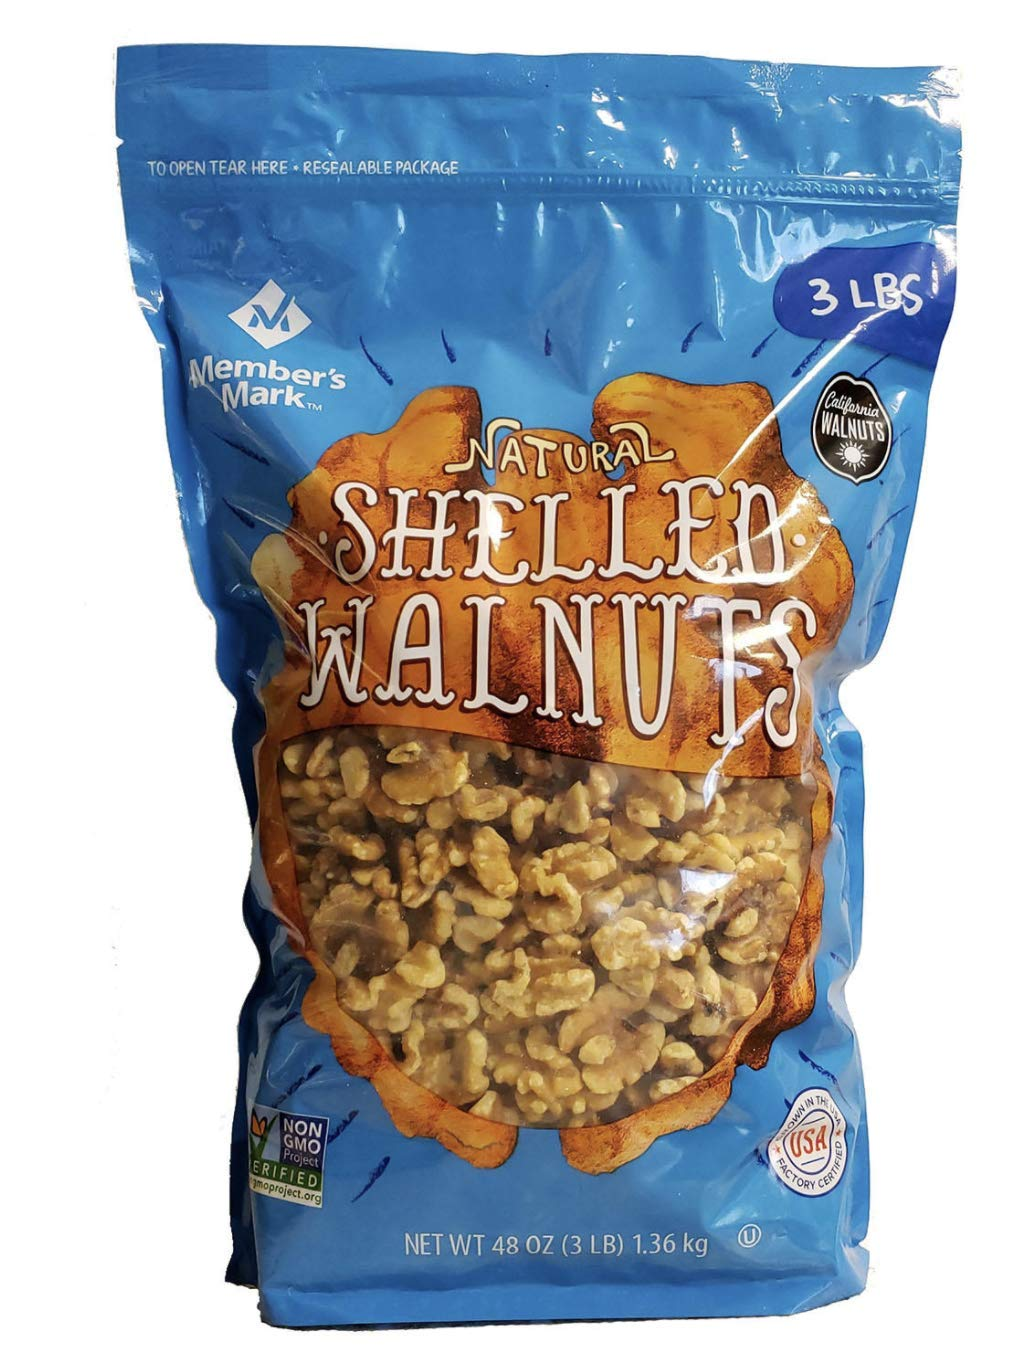 An Item Of Member's Mark Natural Shelled Walnuts (3 Lbs.) Pack Of 1 - Bulk Disc